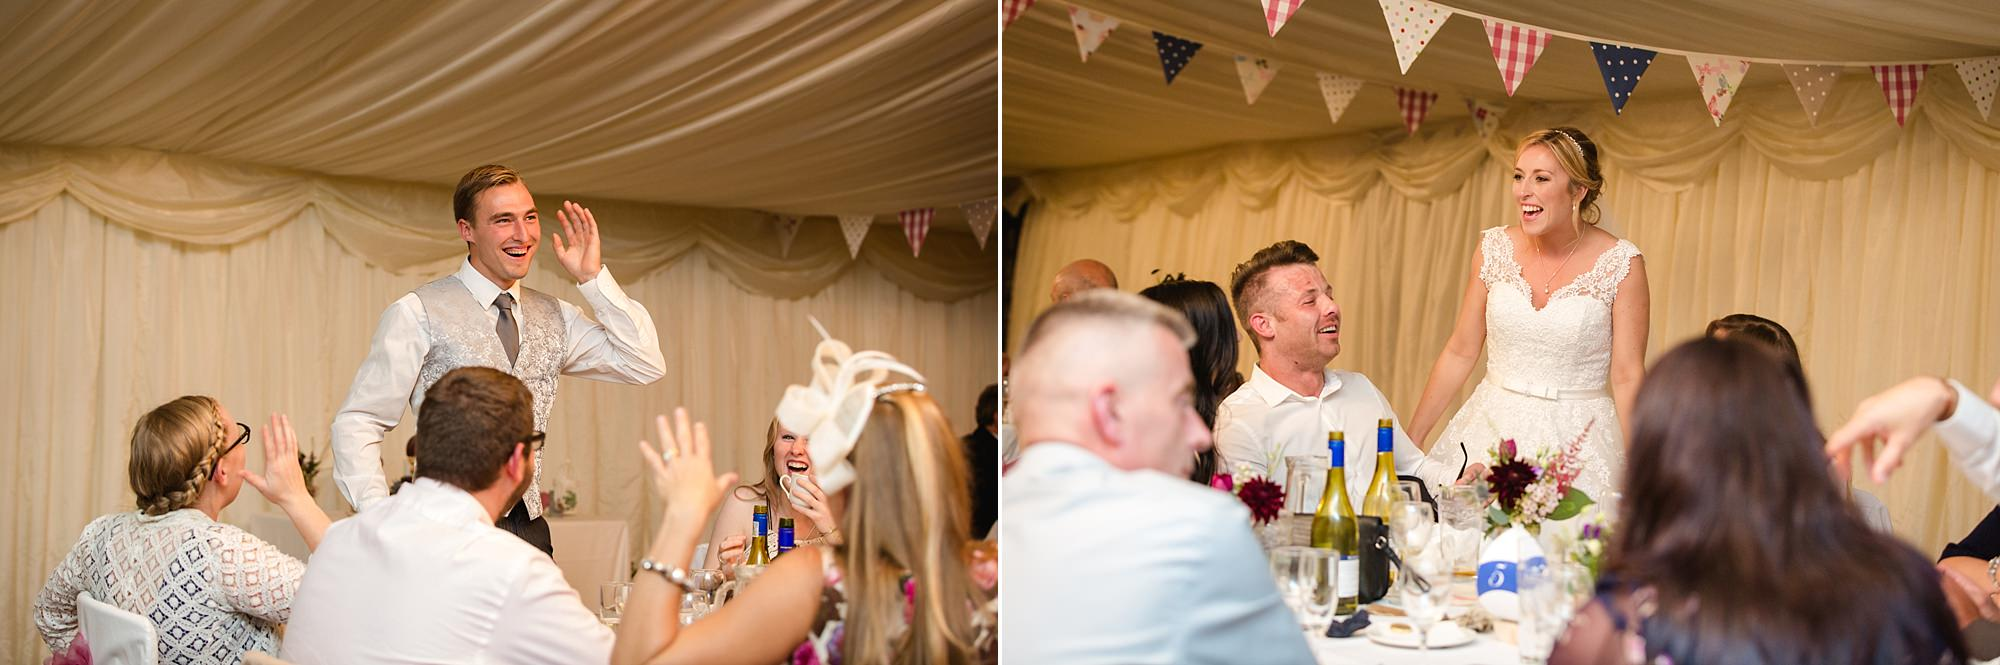 A fun wedding at Plas Isaf bride and groom chatting to guests